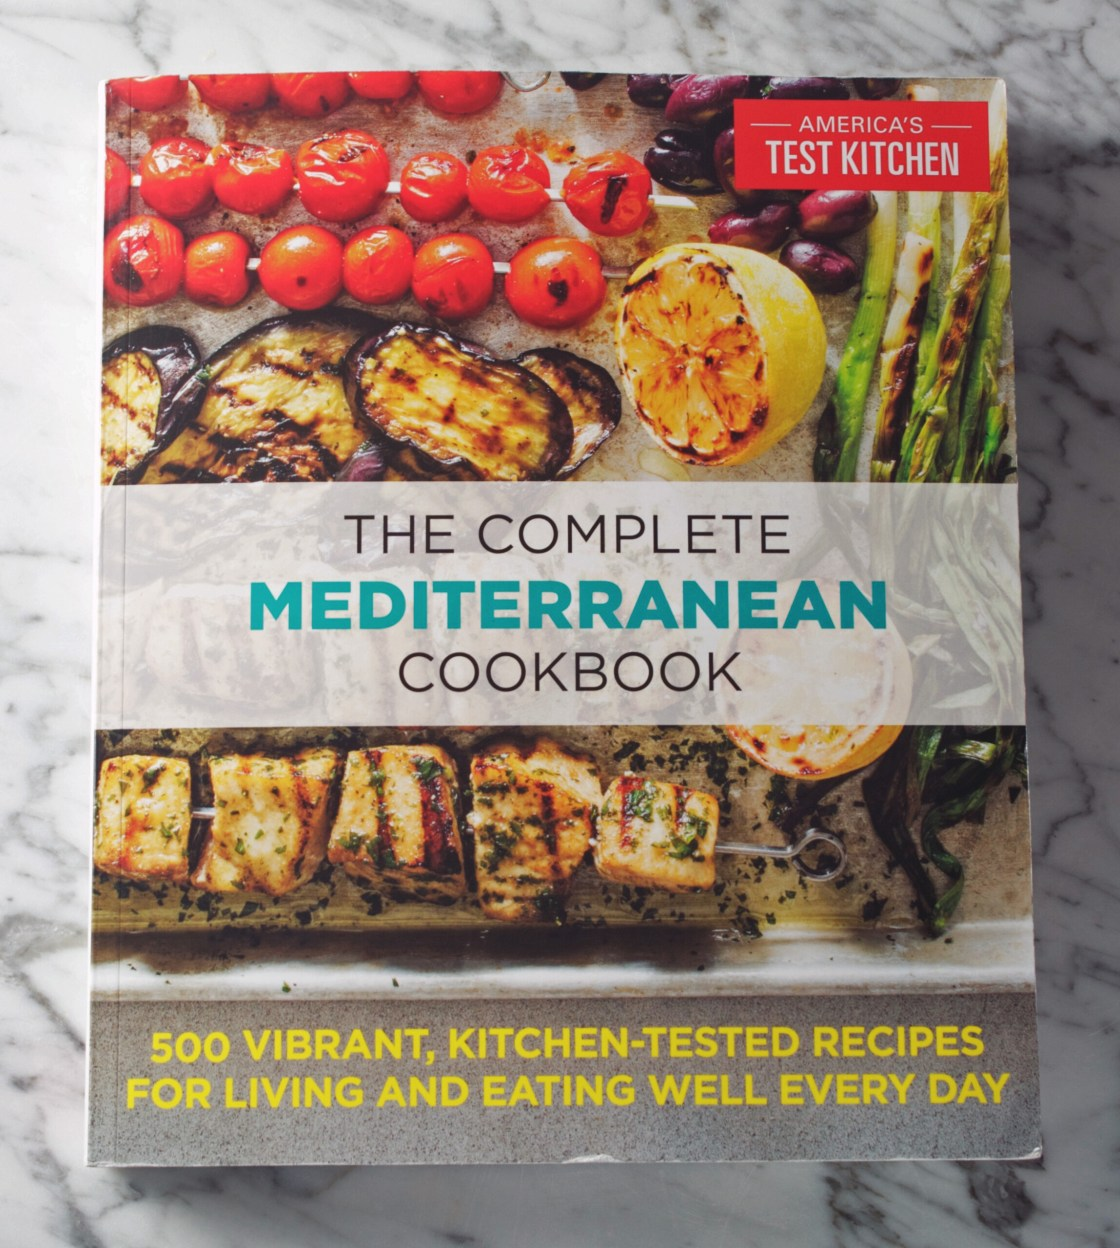 Complete Mediterranean Cookbook | Zestful Kitchen